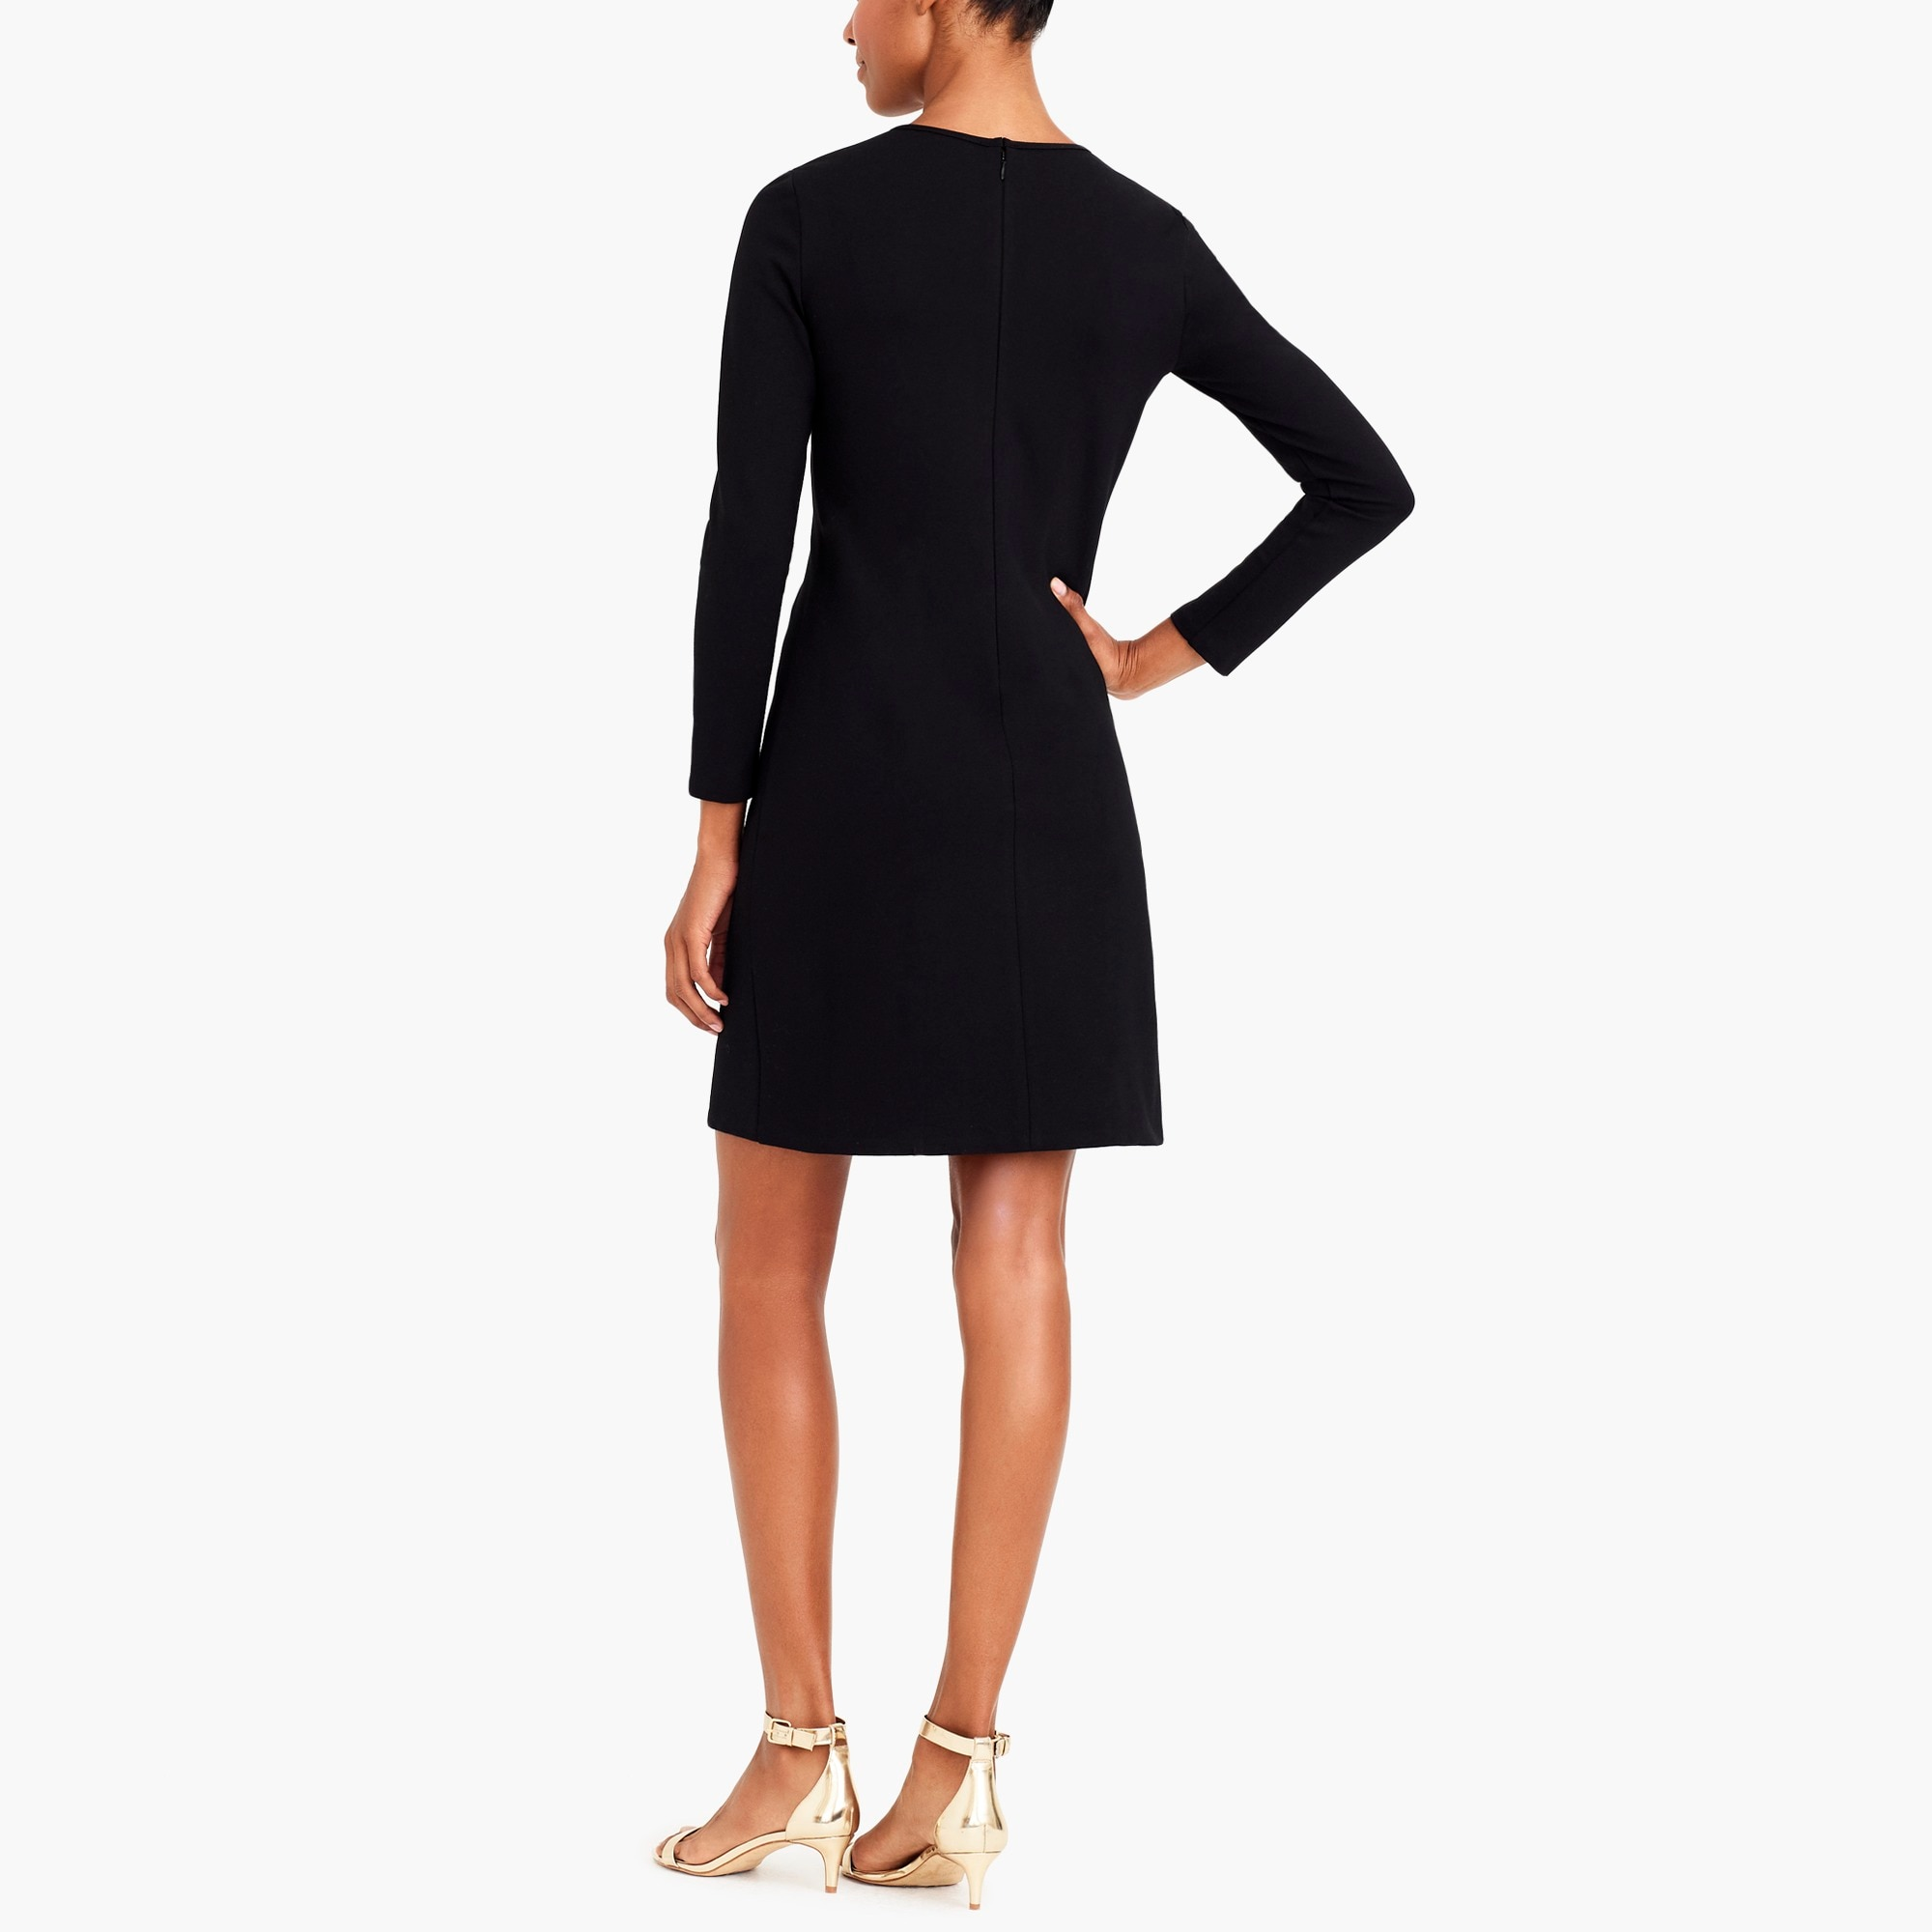 Image 3 for Long-sleeve stretch ponte dress